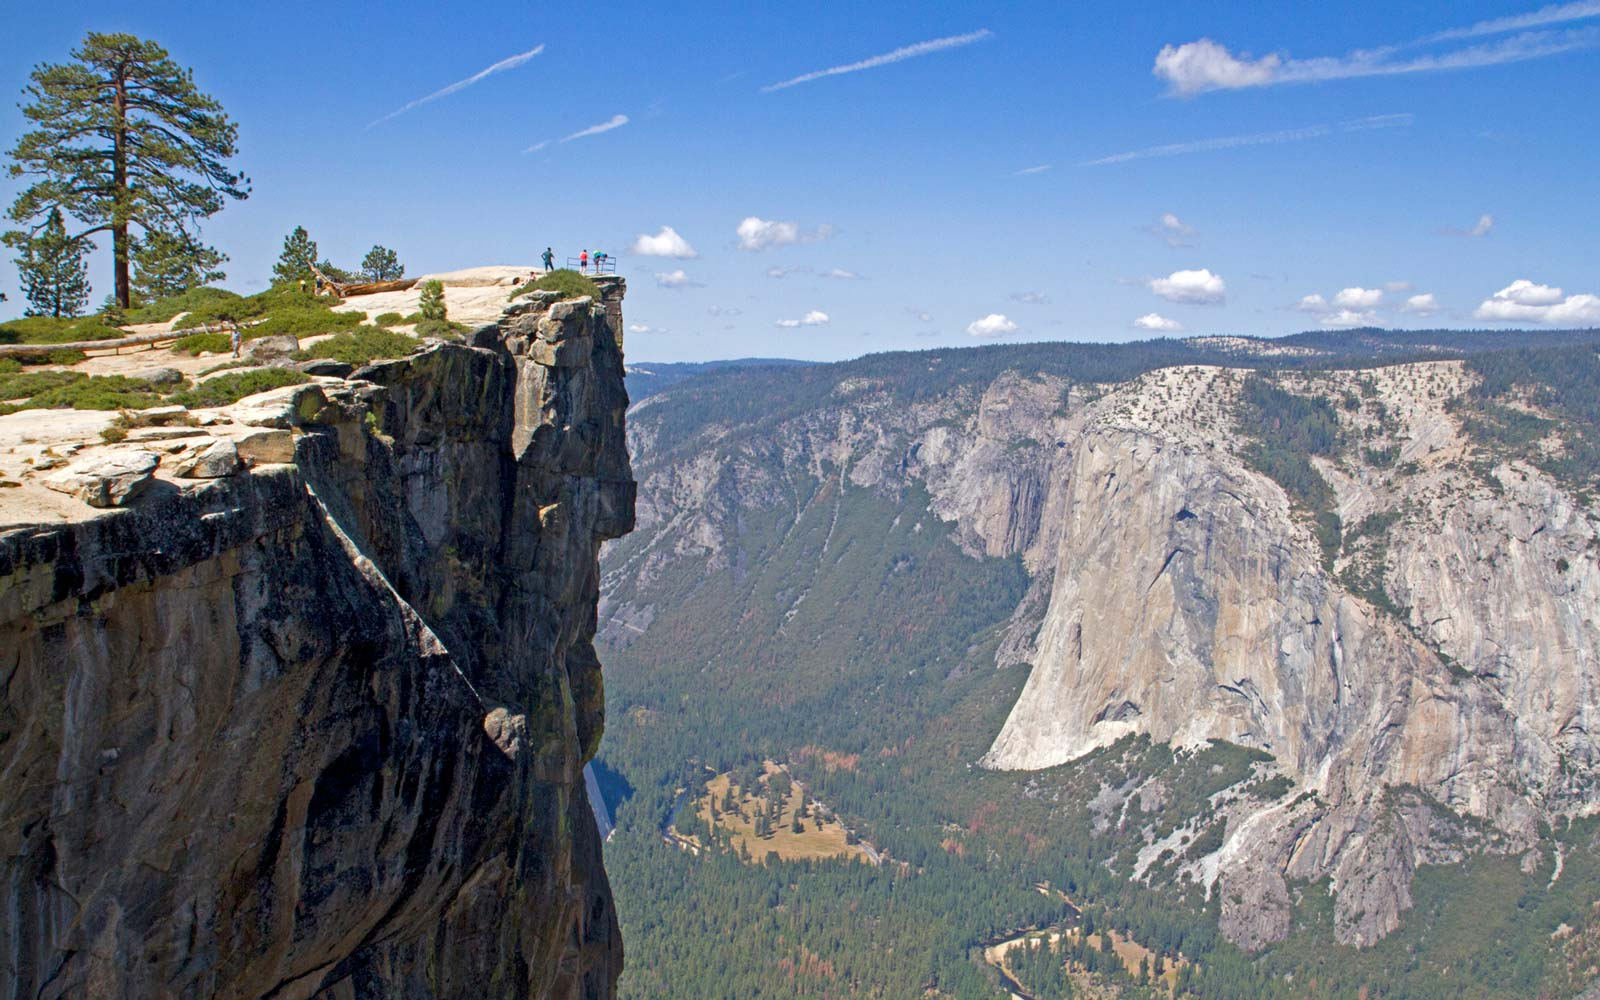 Couple Who Fell to Their Deaths at Yosemite National Park Identified As Popular Travel Bloggers